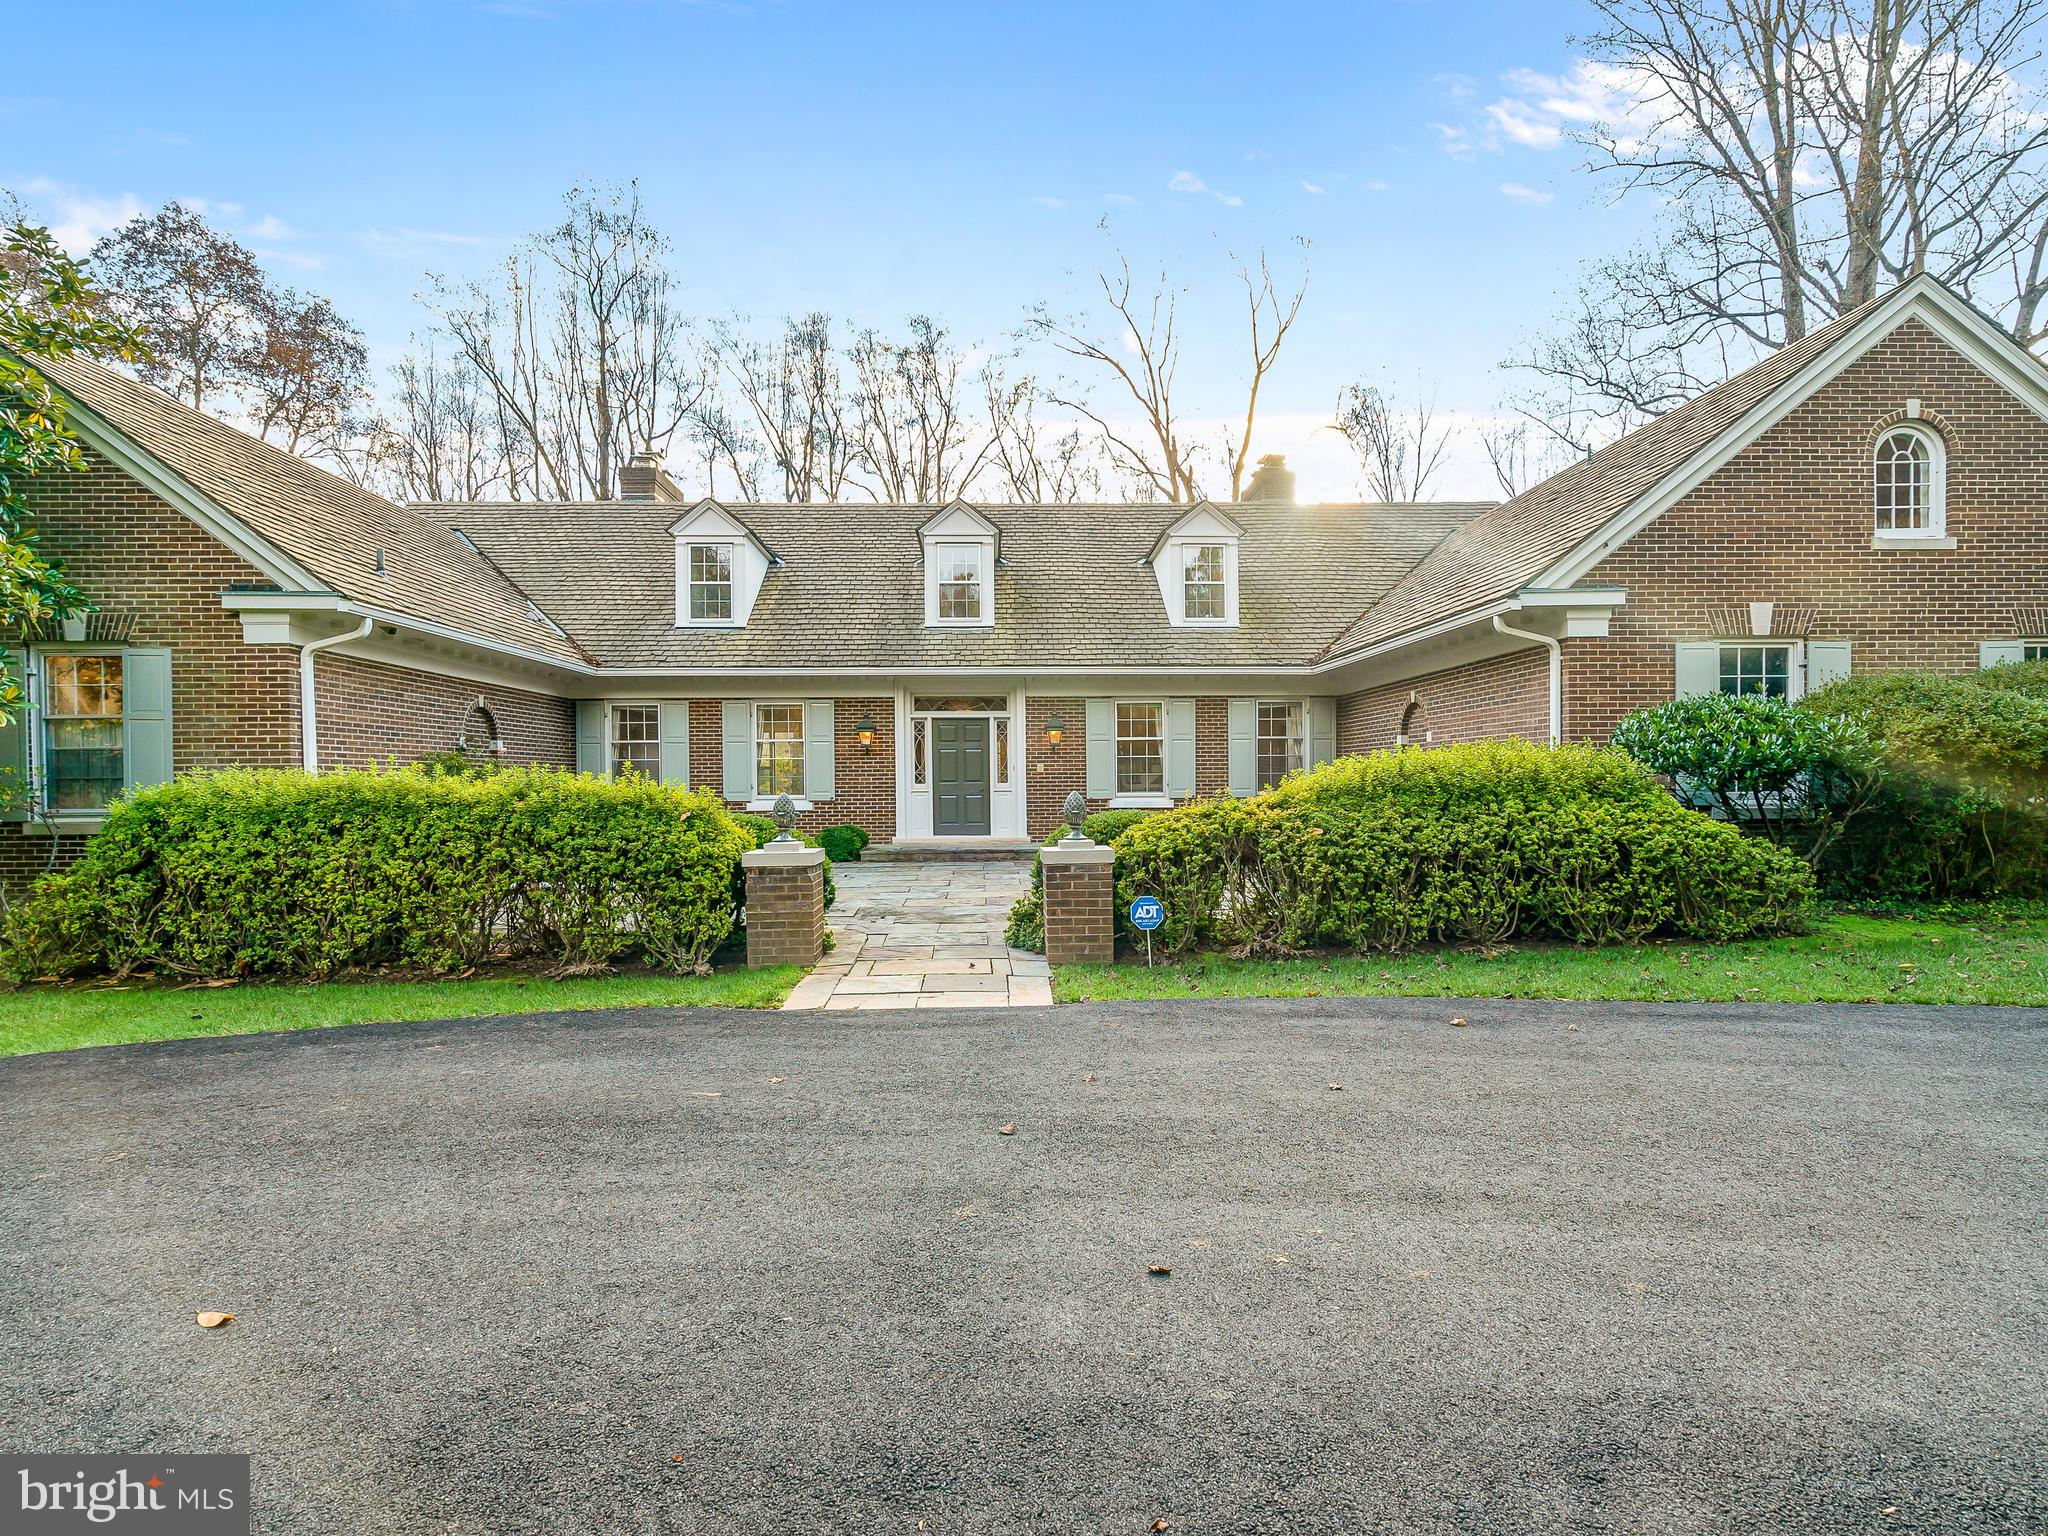 14 Stanmore Ct, Potomac, MD, 20854